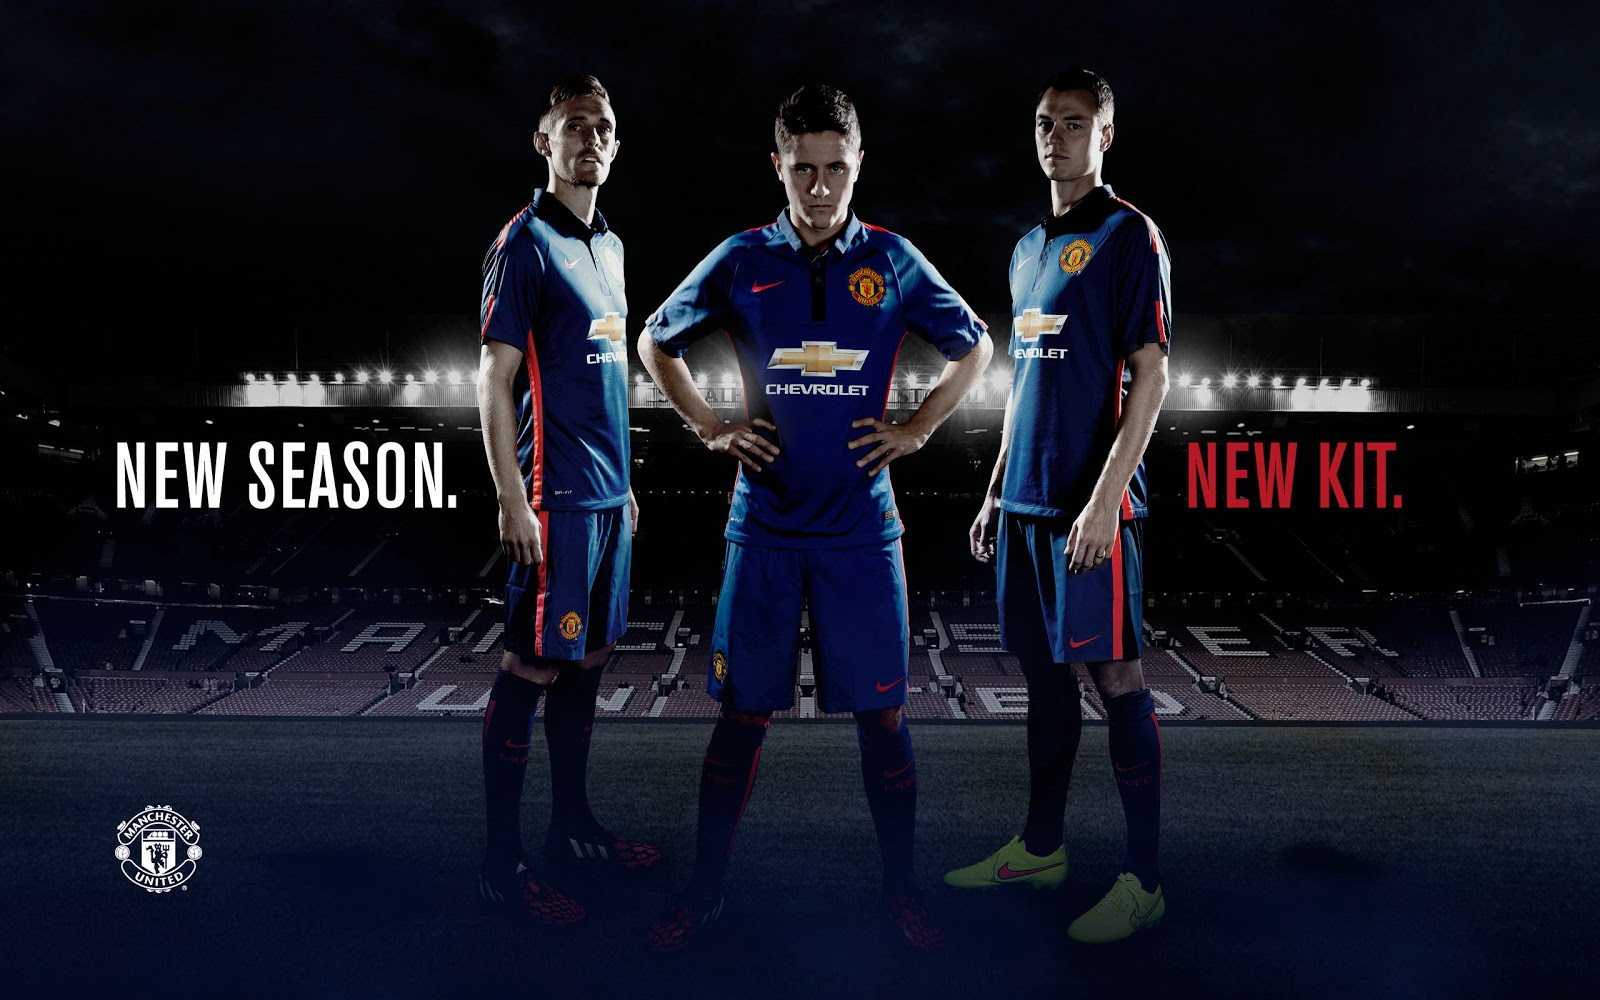 2014-15 season  The new Manchester United 14-15 Jerseys are unveiledManchester United 2014 Away Kit